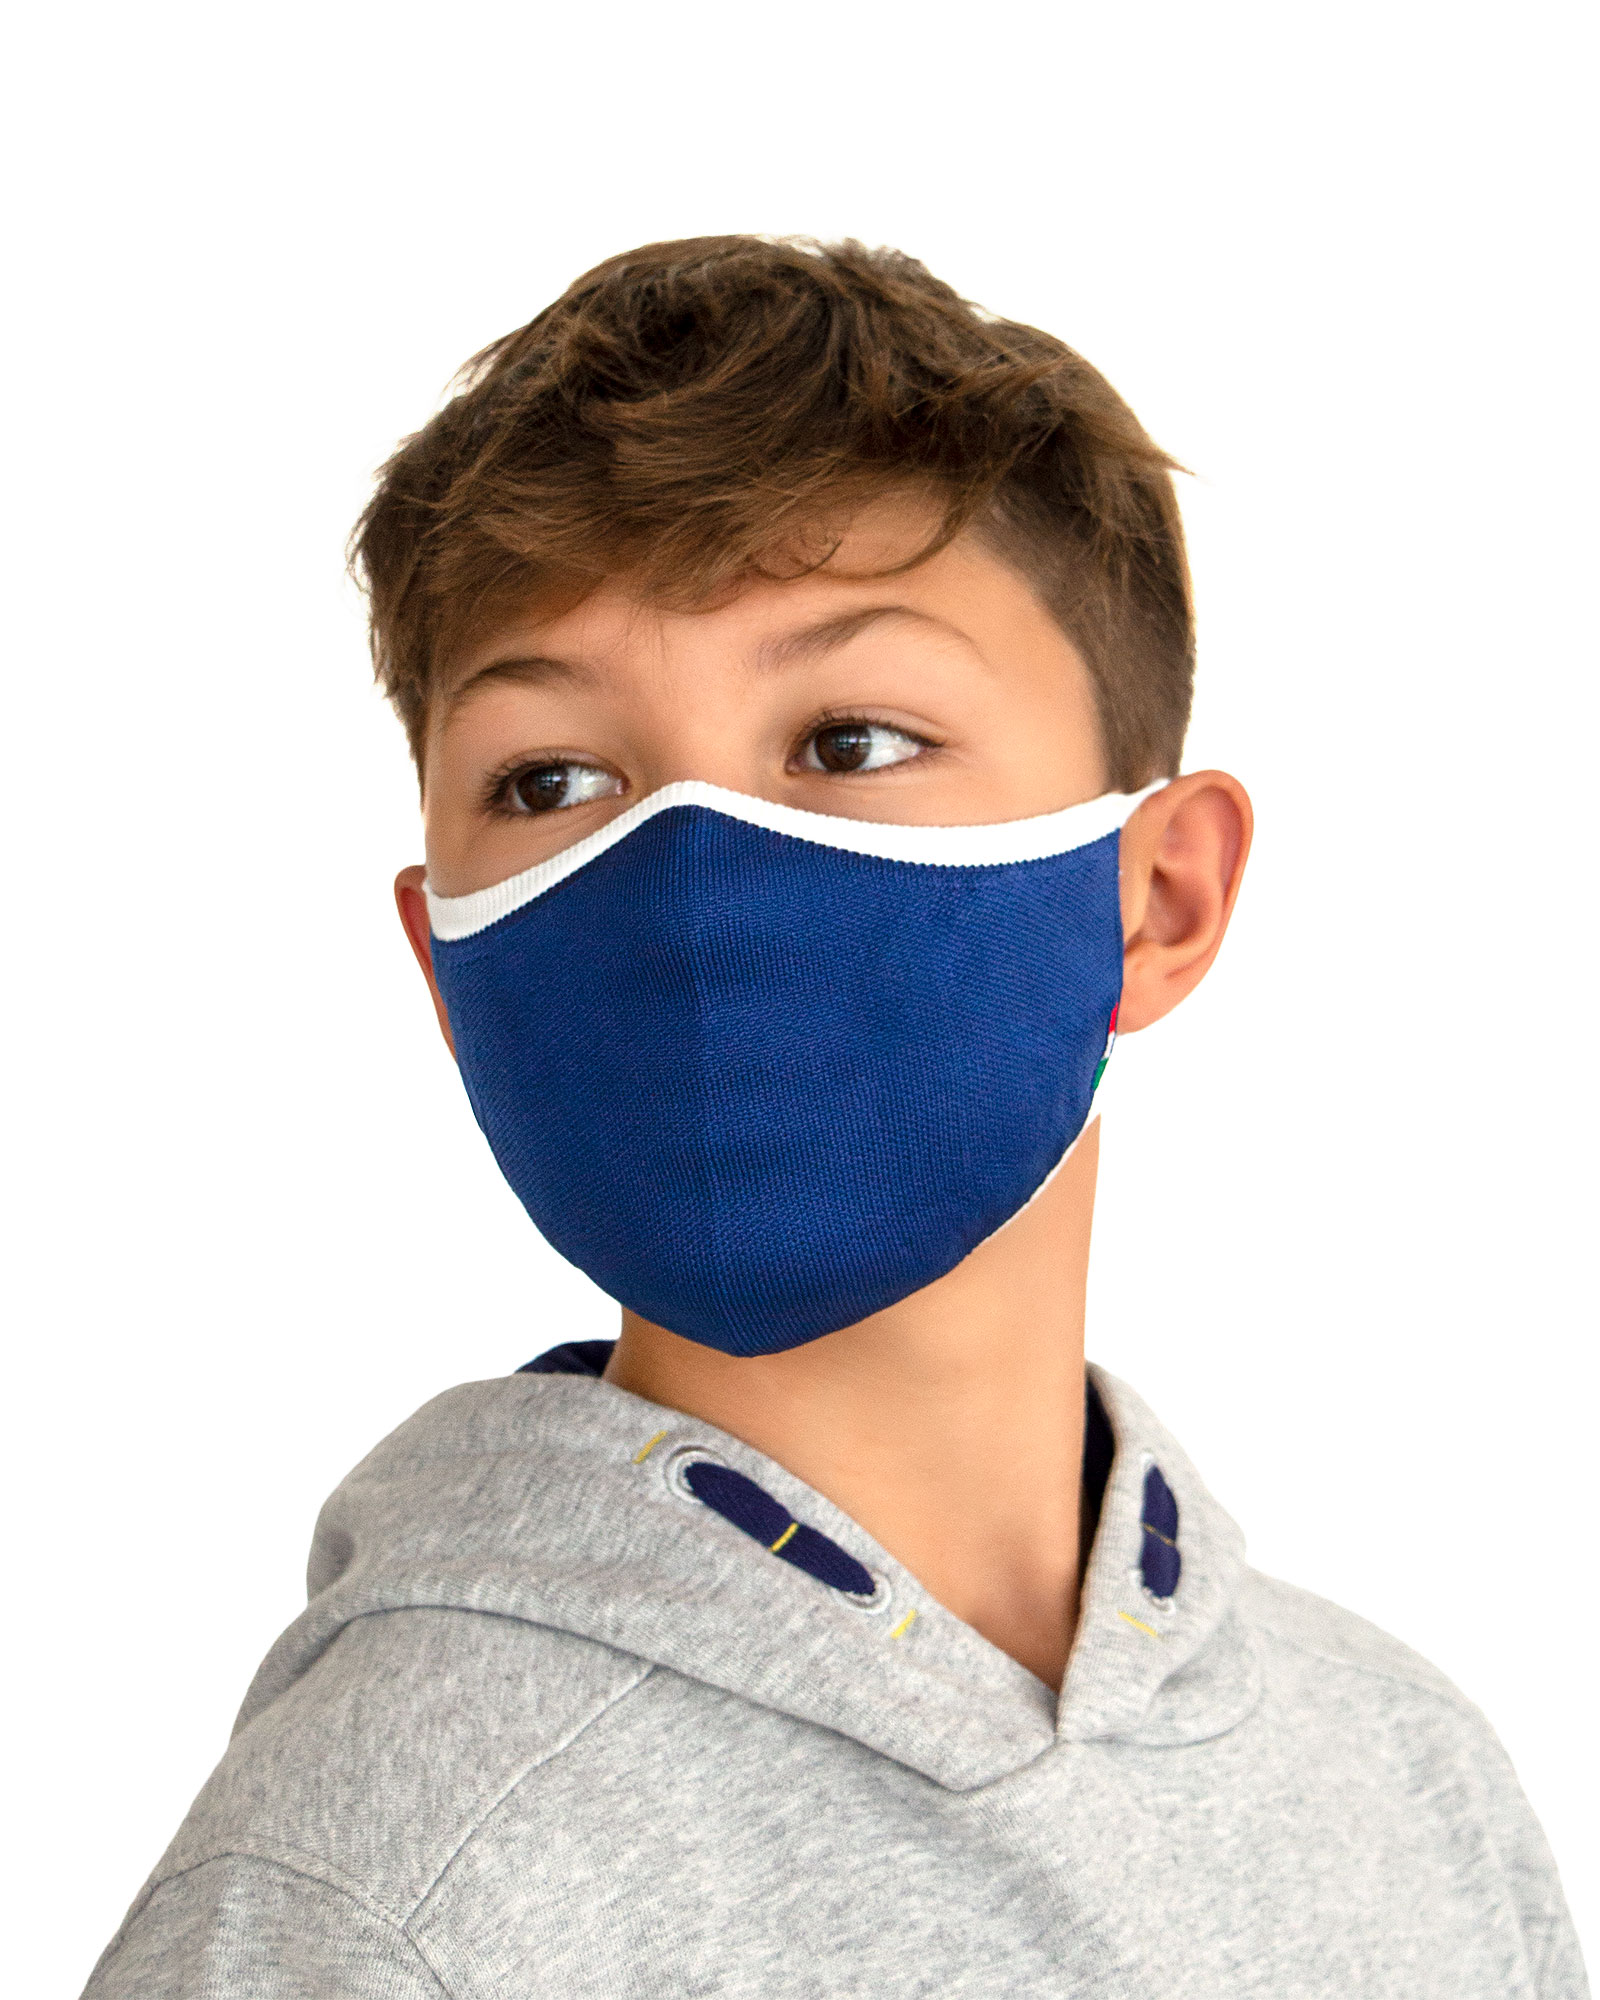 KIDS-MASK-01S-relaxsan-unima-kids-mask_371-BLUE-ROYAL_boy